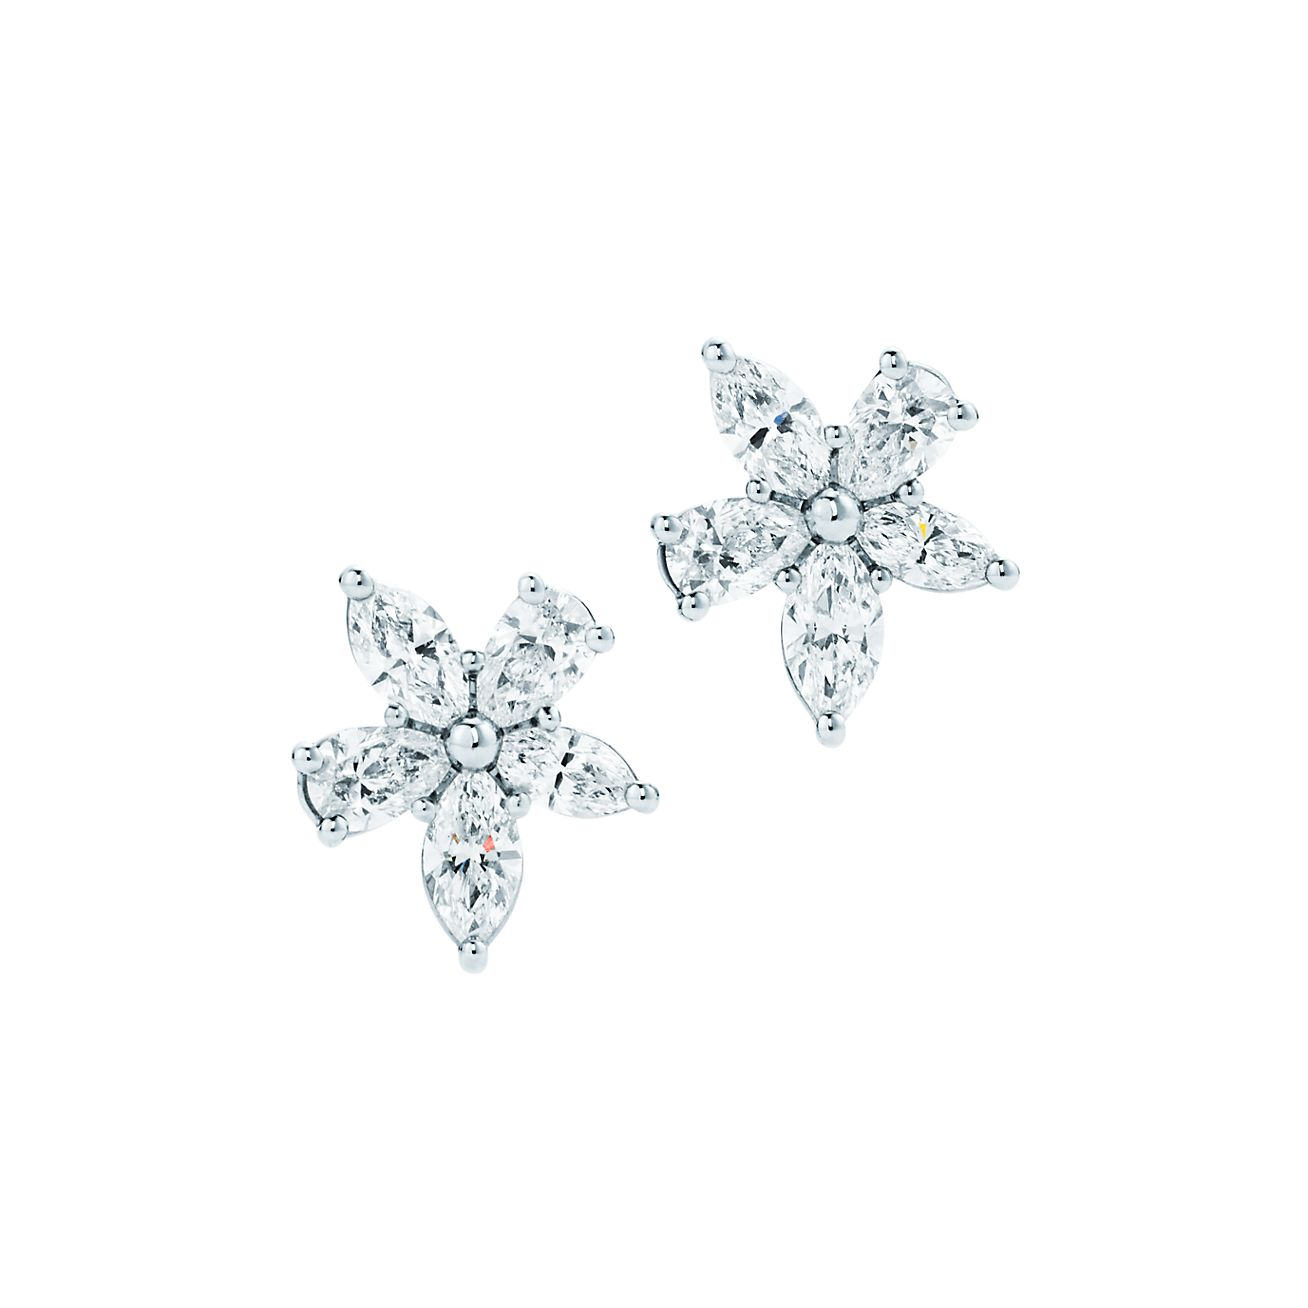 Tiffany Victoria mixed cluster earrings in platinum with